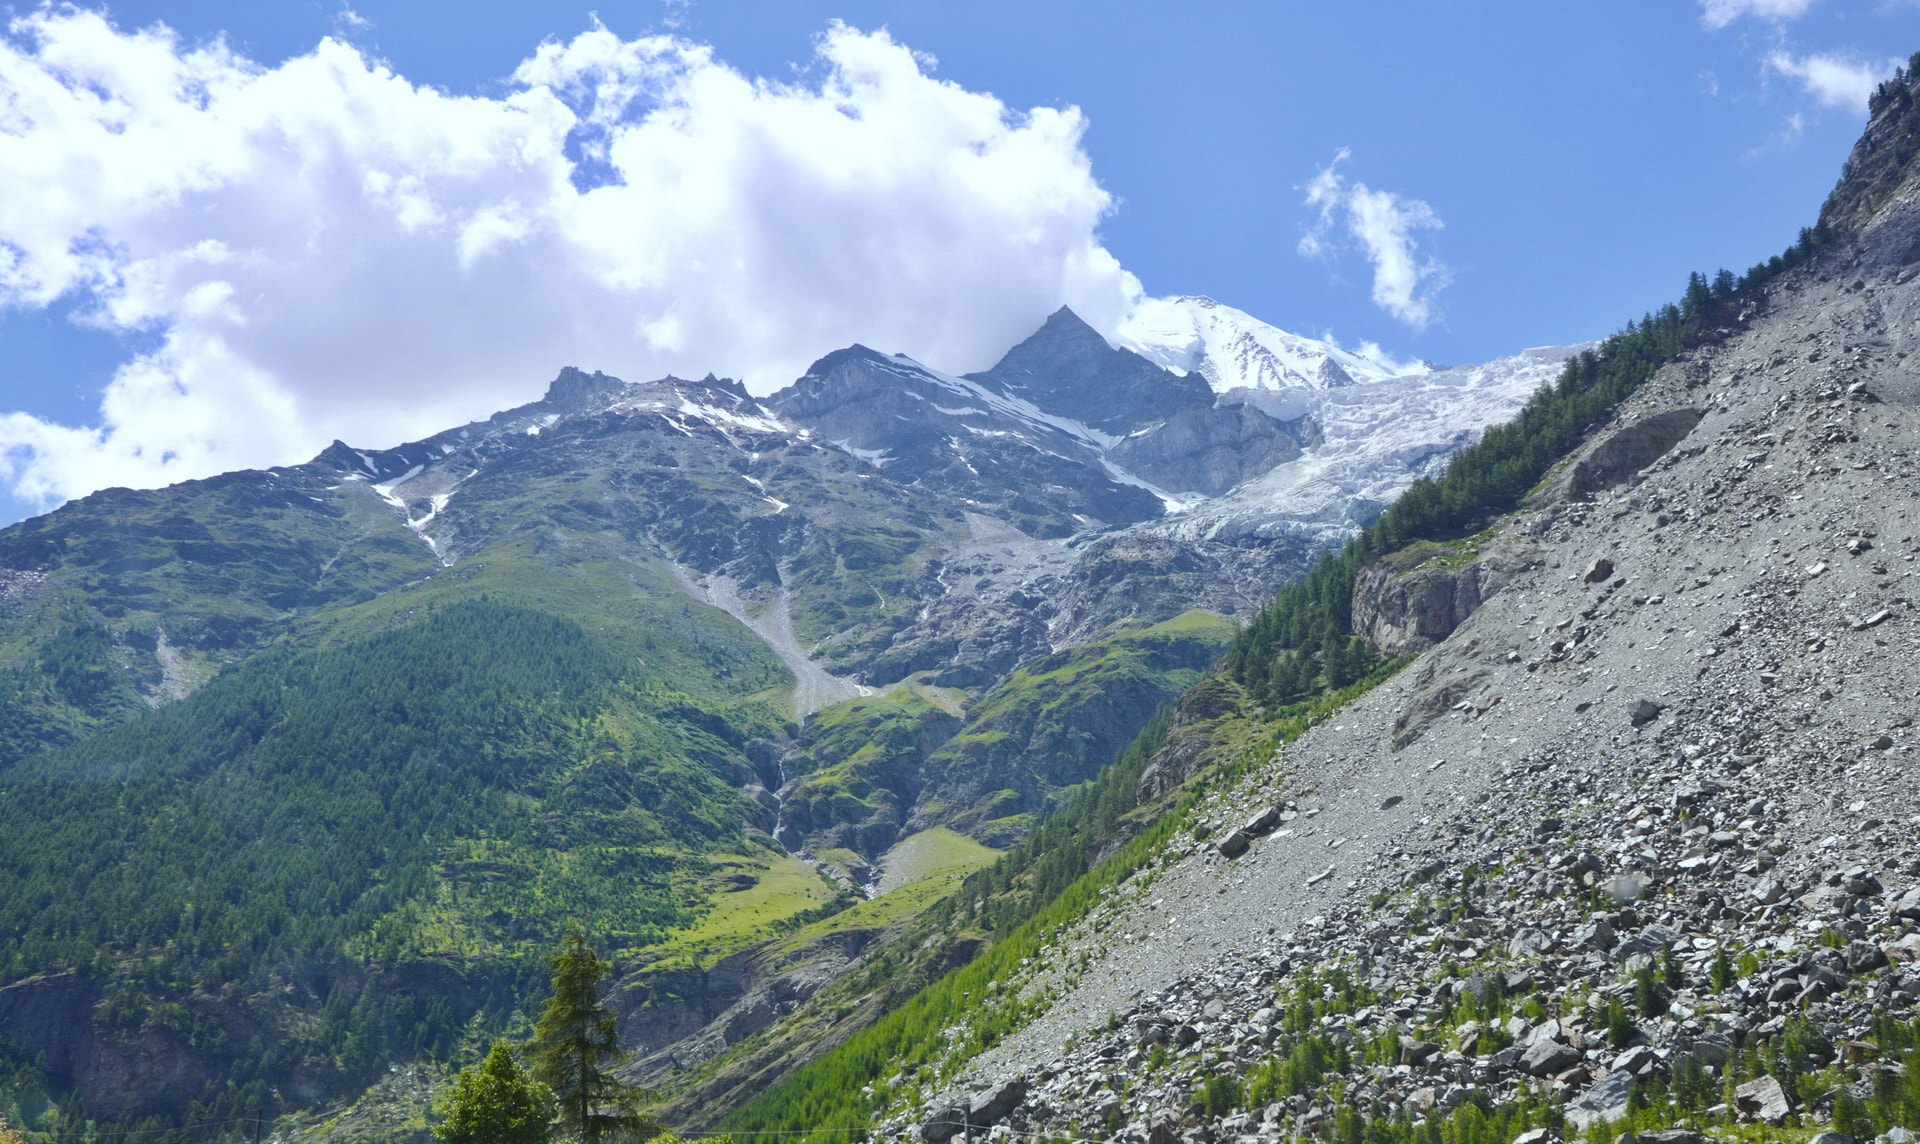 Zermatt is surrounded by high mountain peaks